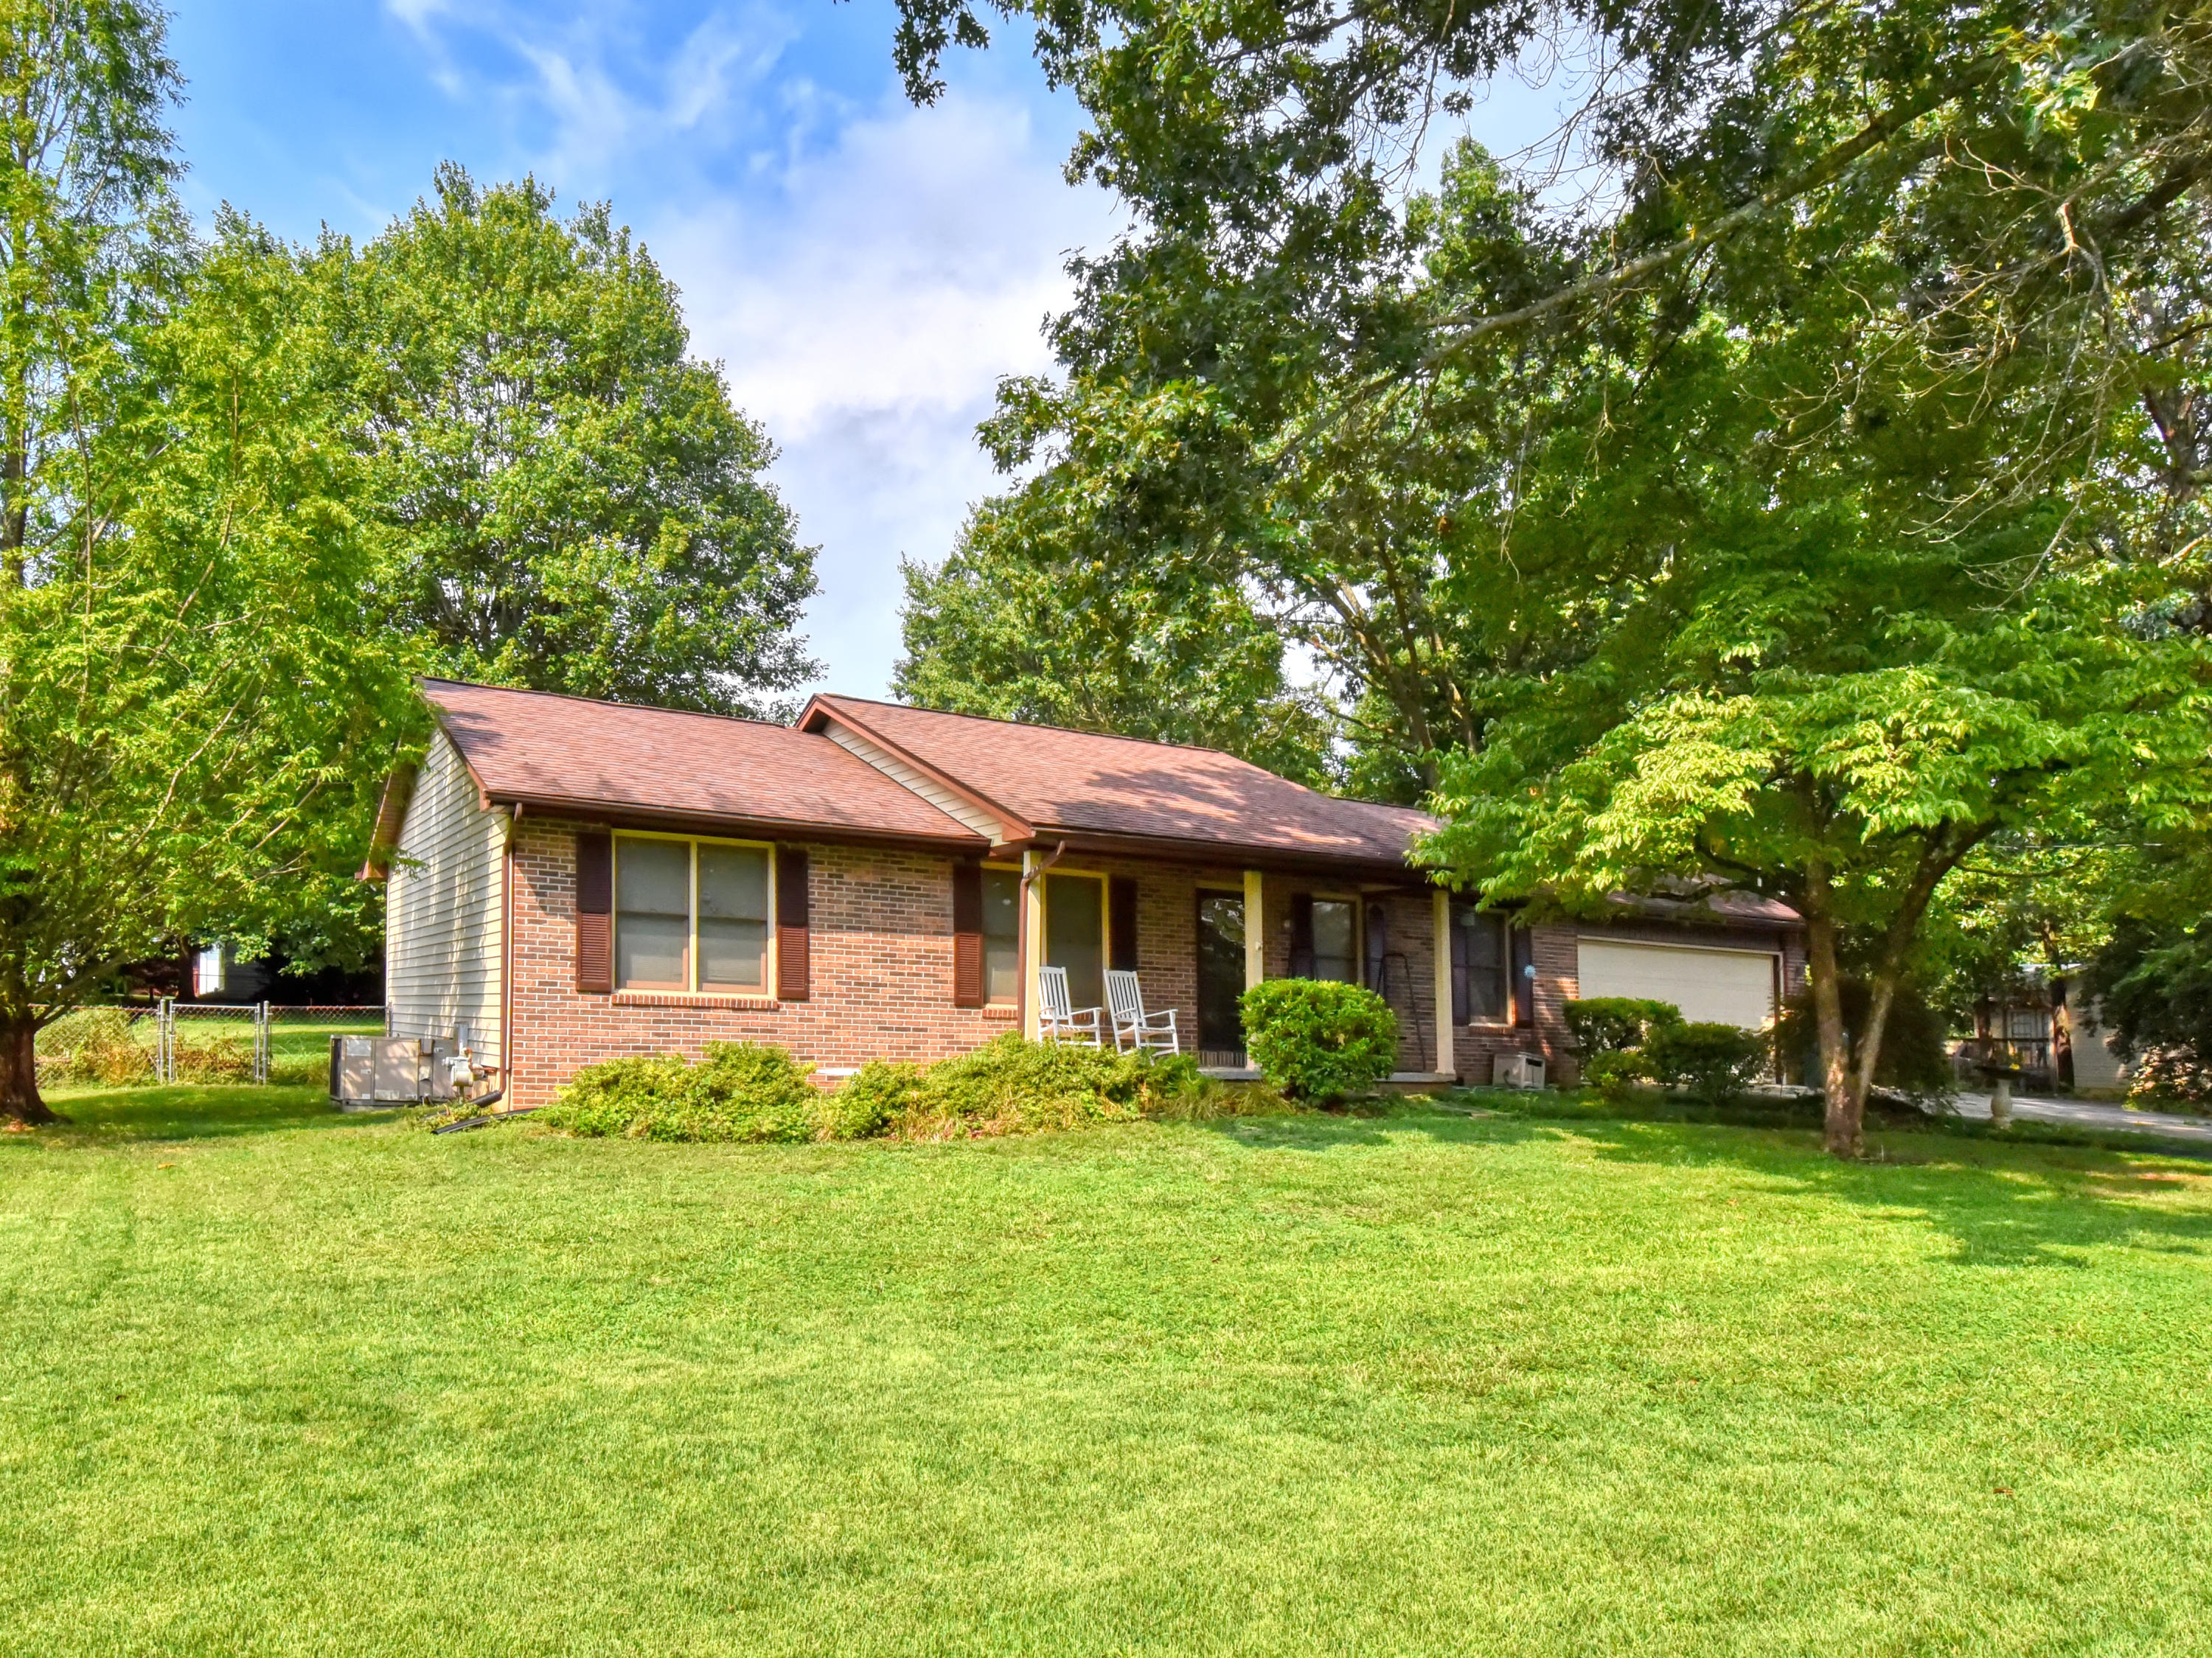 213 Dorcee, Knoxville, Tennessee, United States 37934, 3 Bedrooms Bedrooms, ,2 BathroomsBathrooms,Single Family,For Sale,Dorcee,1126641